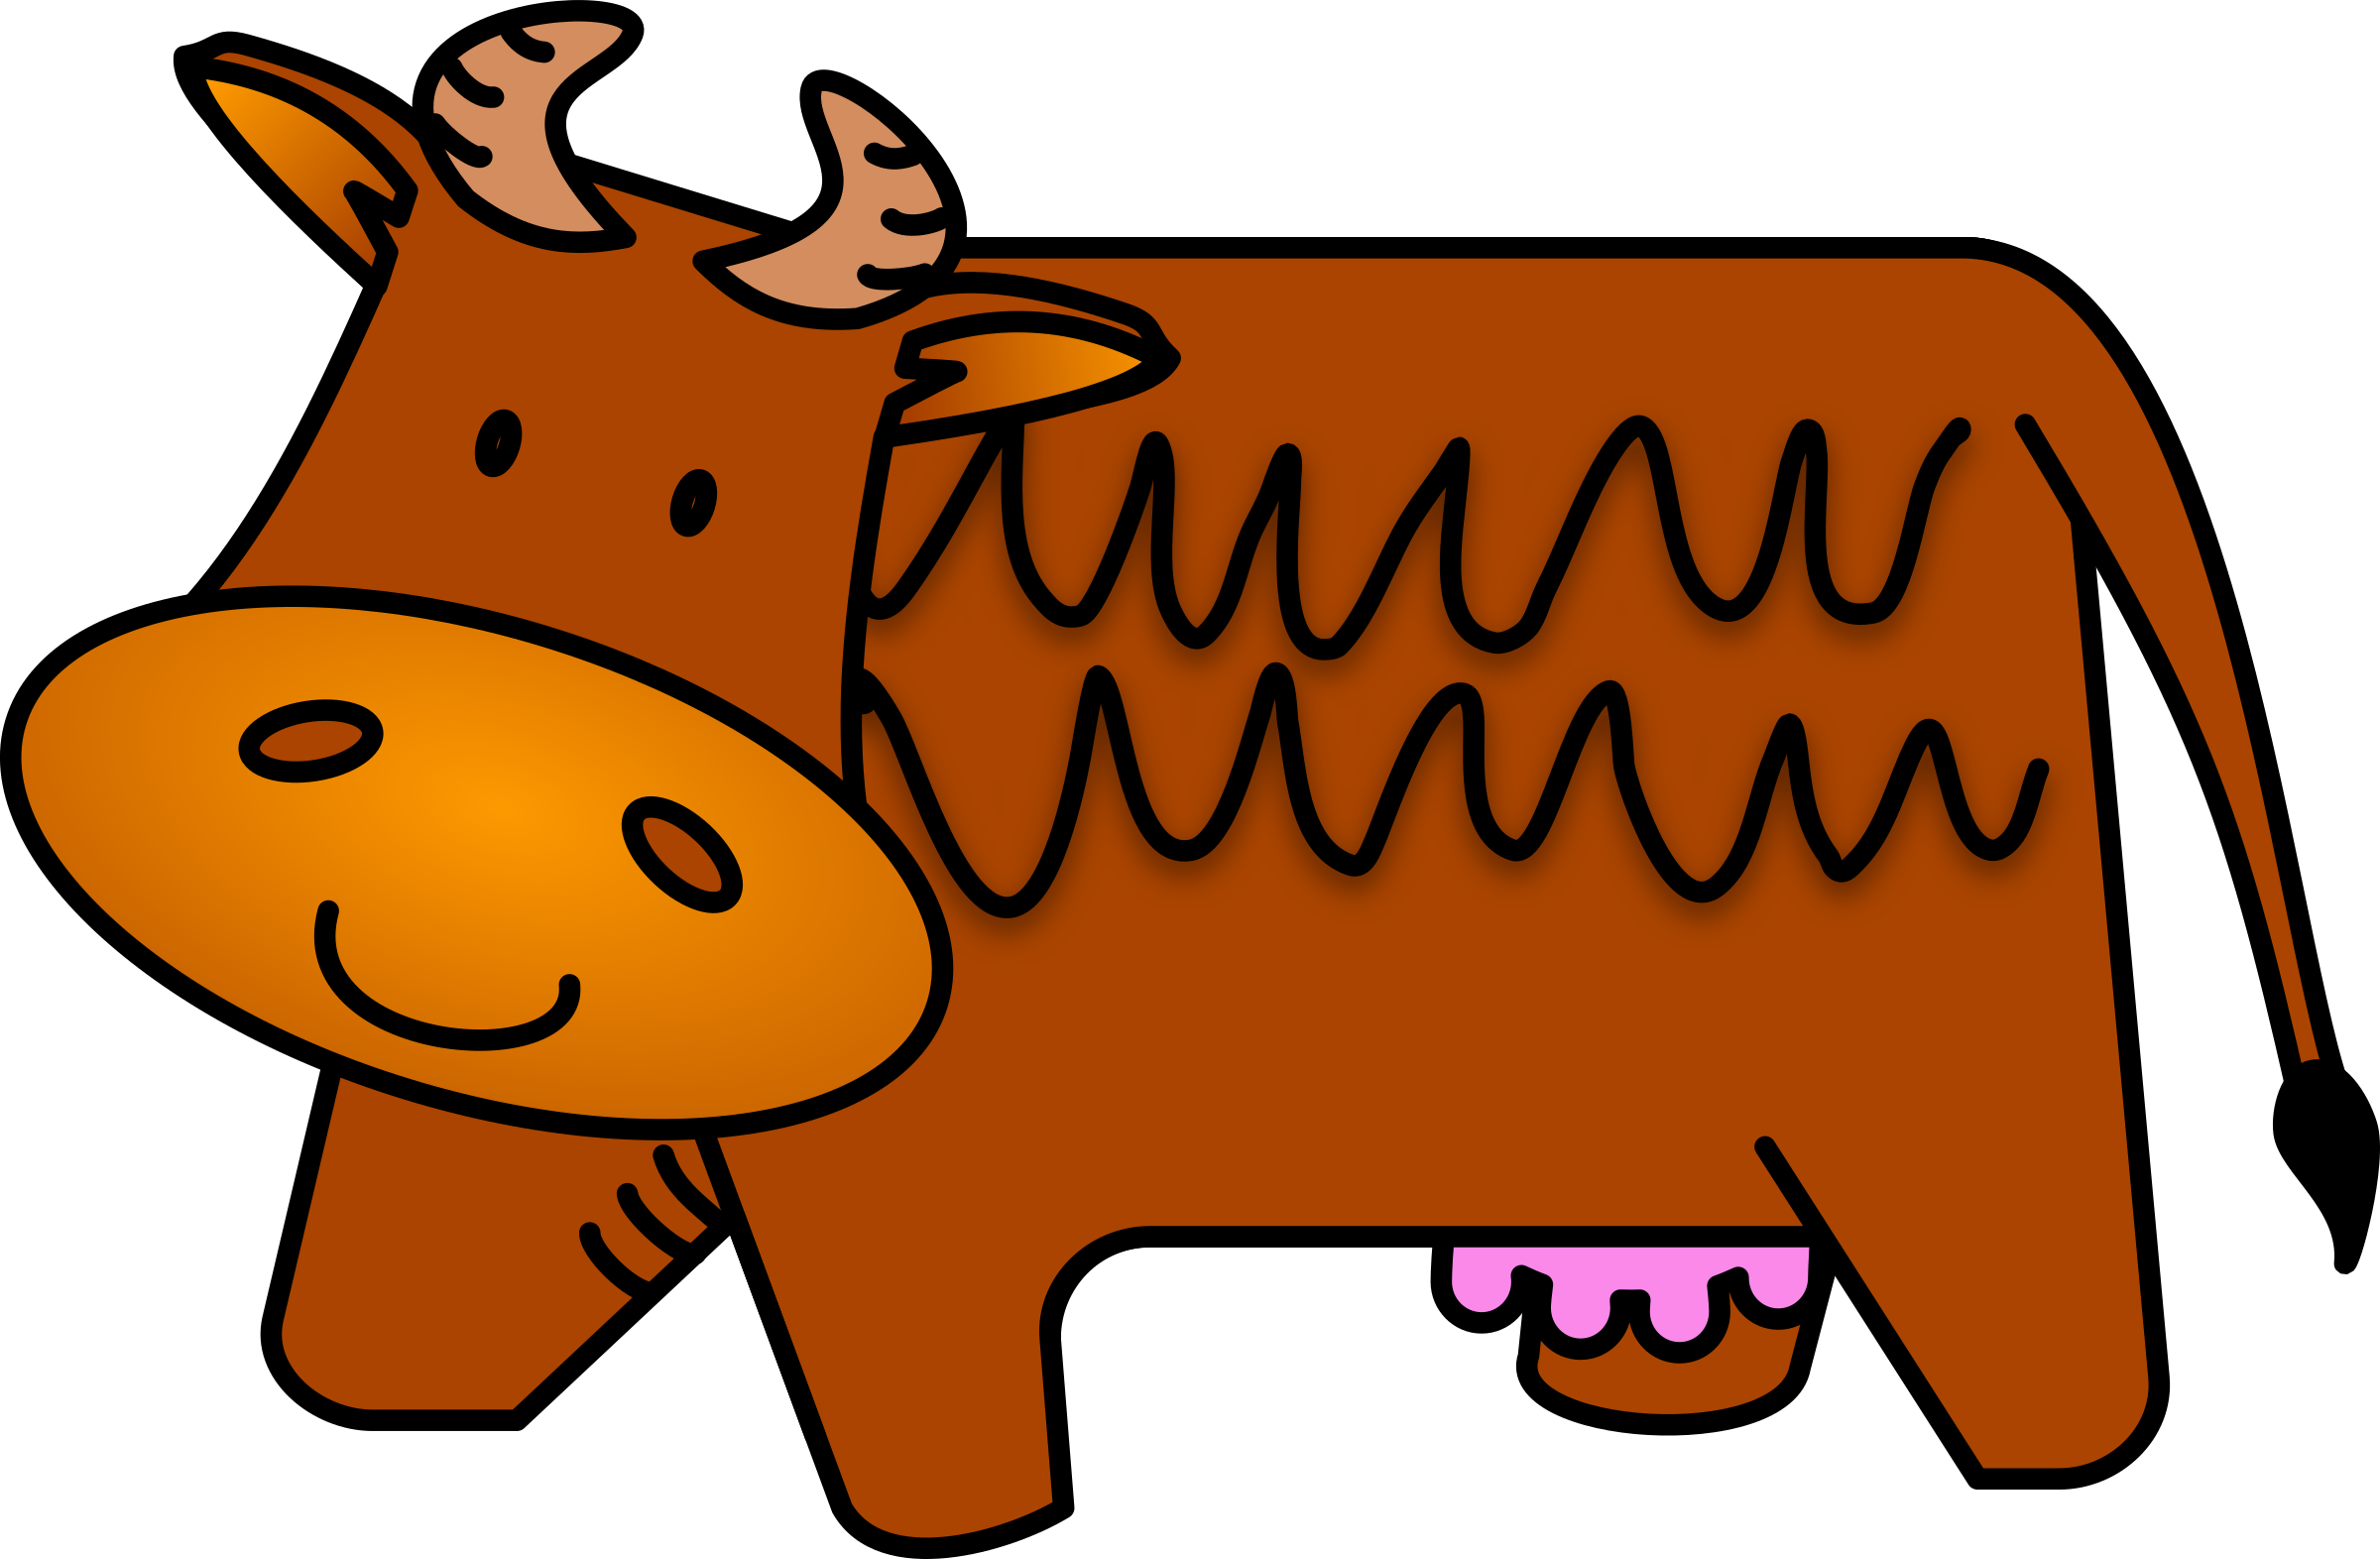 Brown Cow by Bibbleycheese